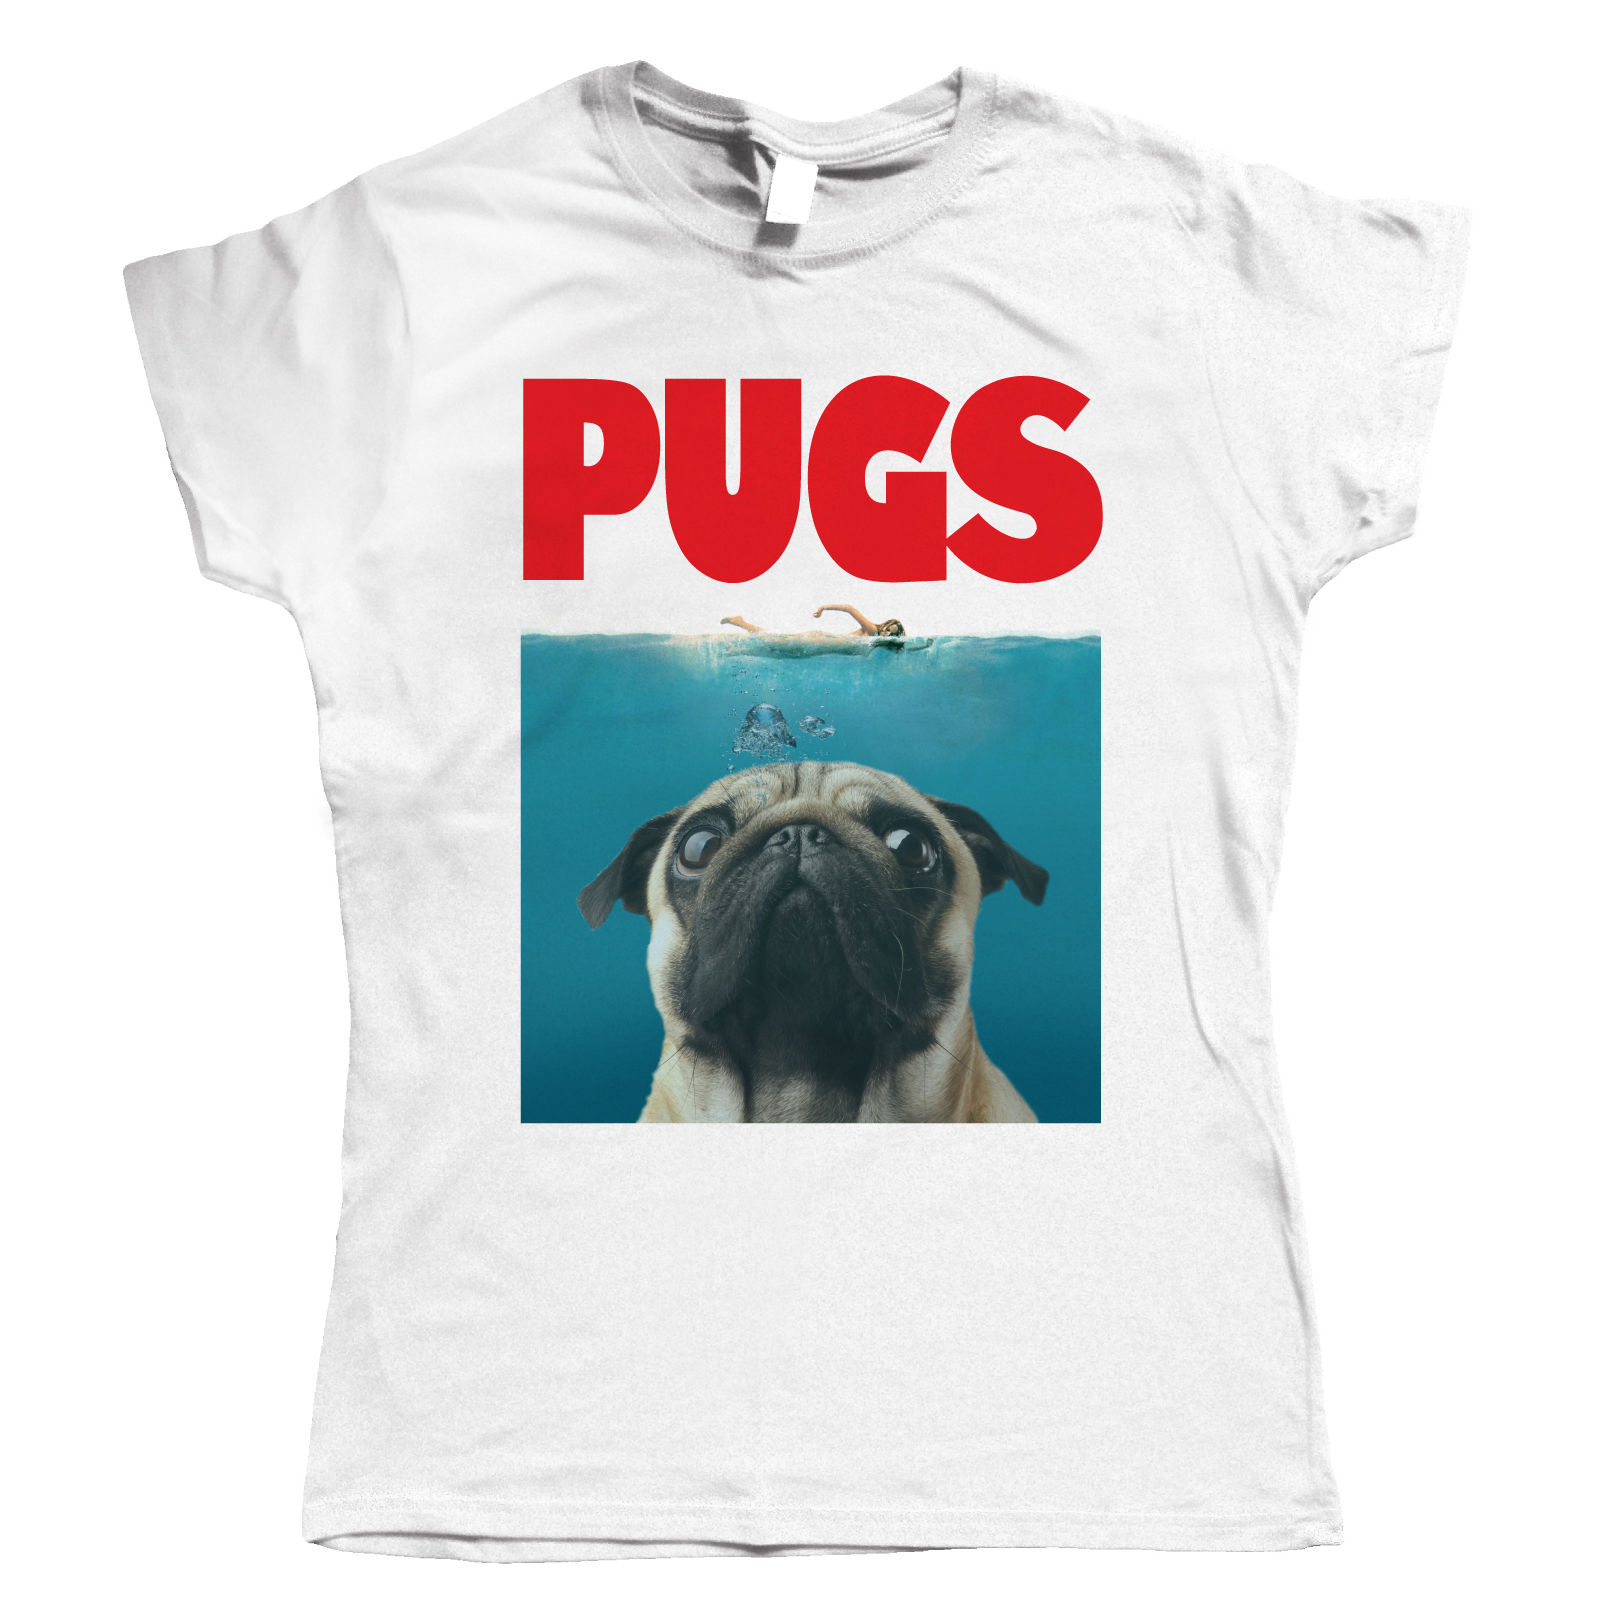 Find great deals on eBay for pug clothes. Shop with confidence.